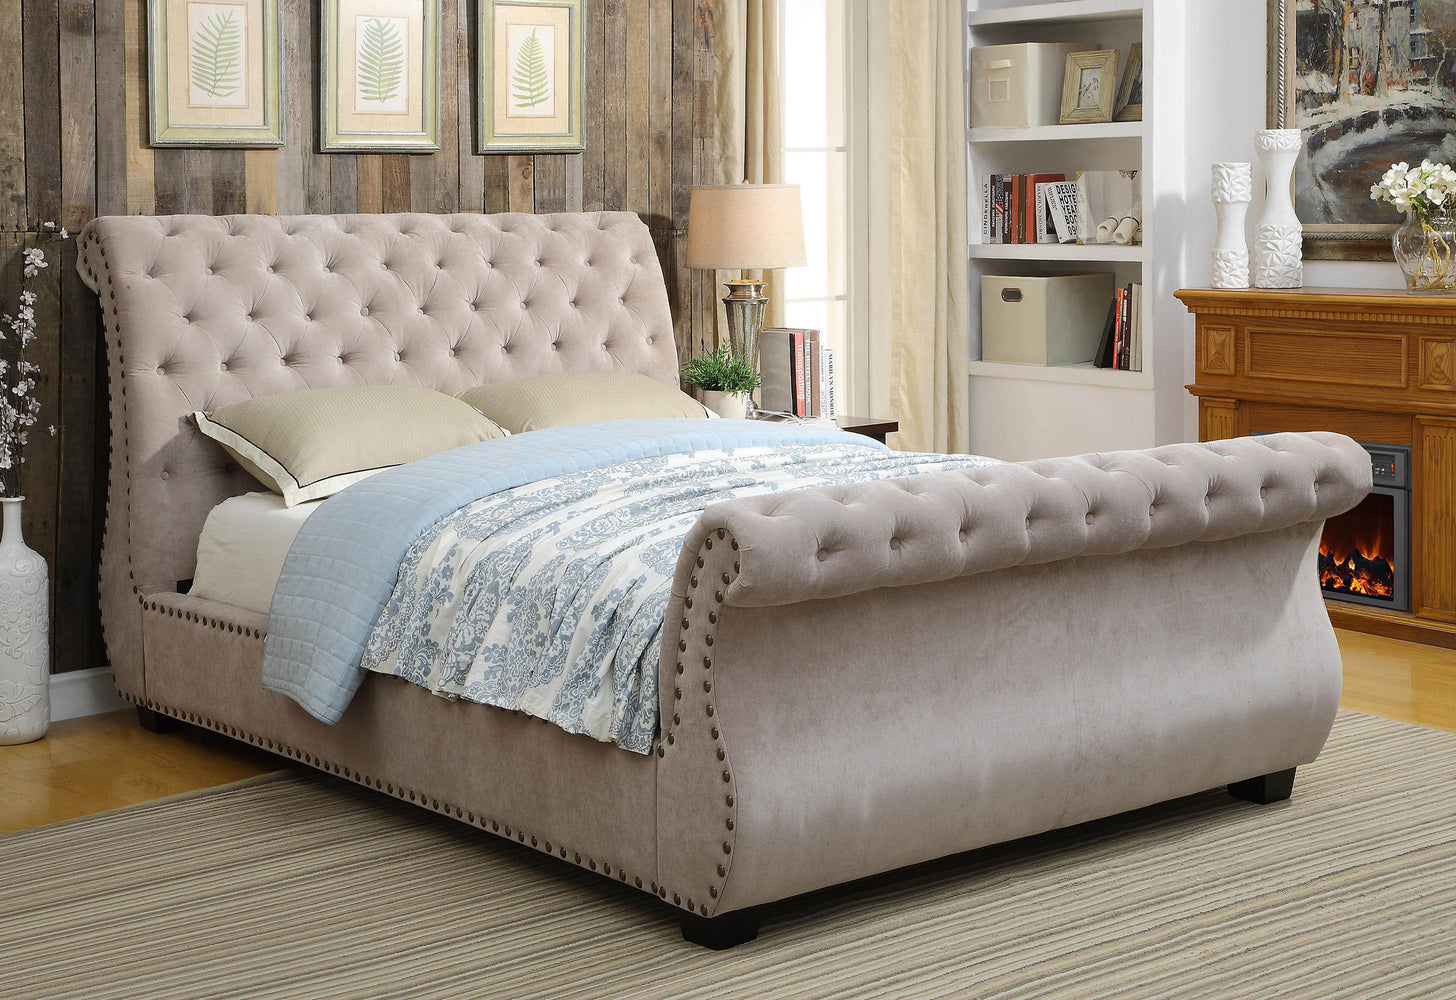 Kensy bed